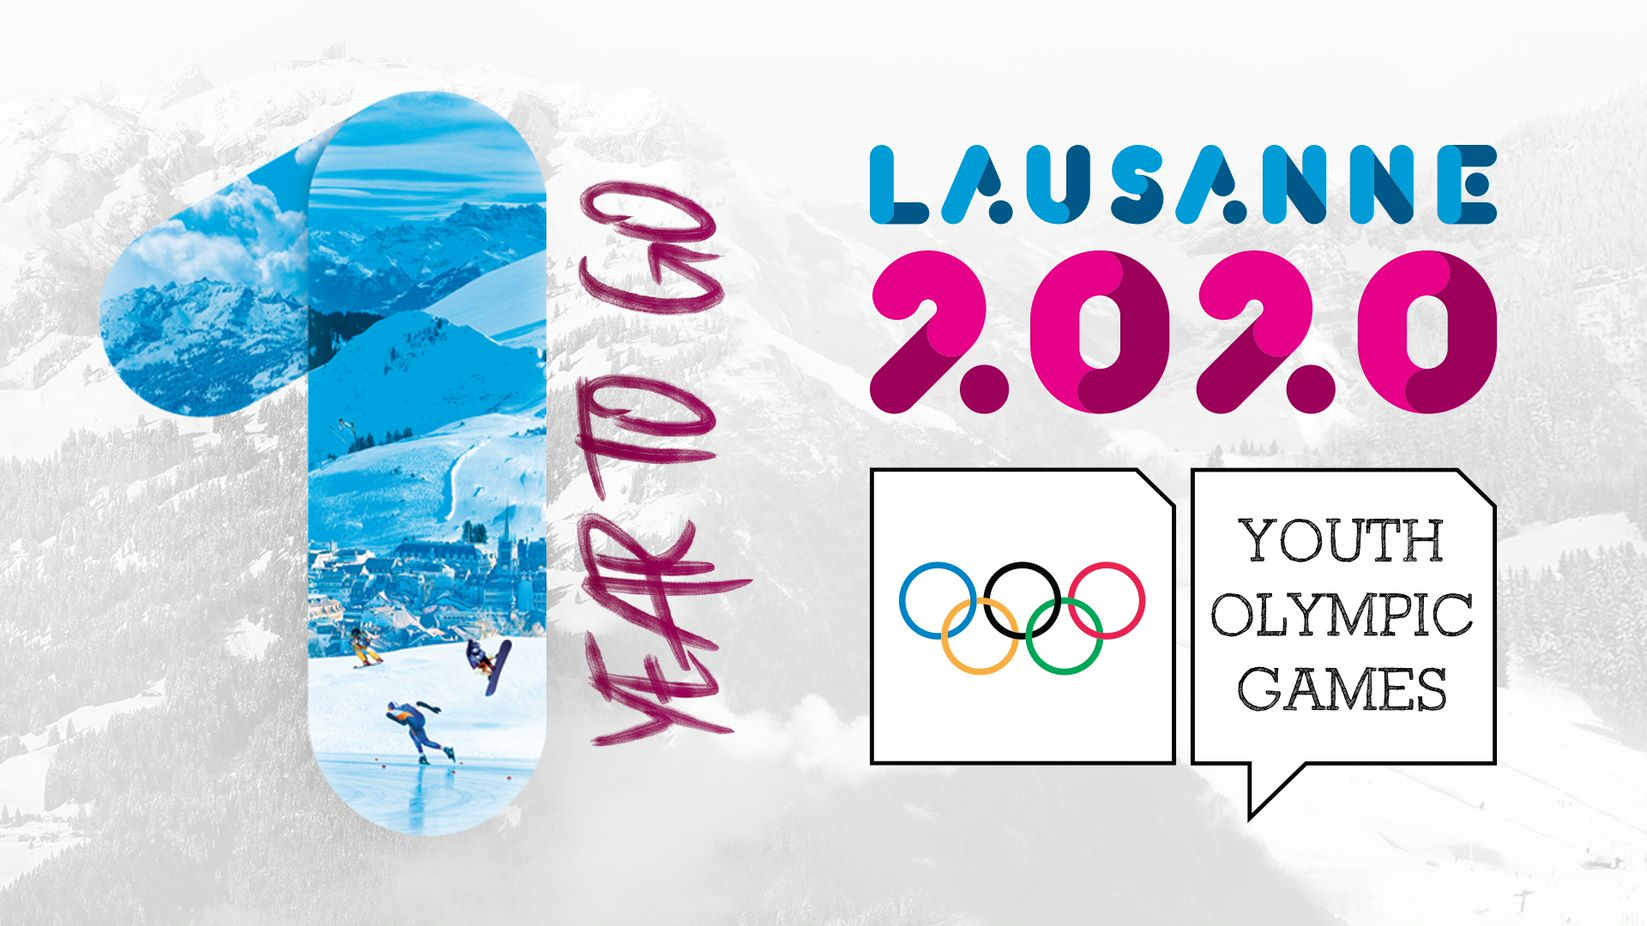 Lausanne 2020 mascot Yodli unveiled on «One Year to go»